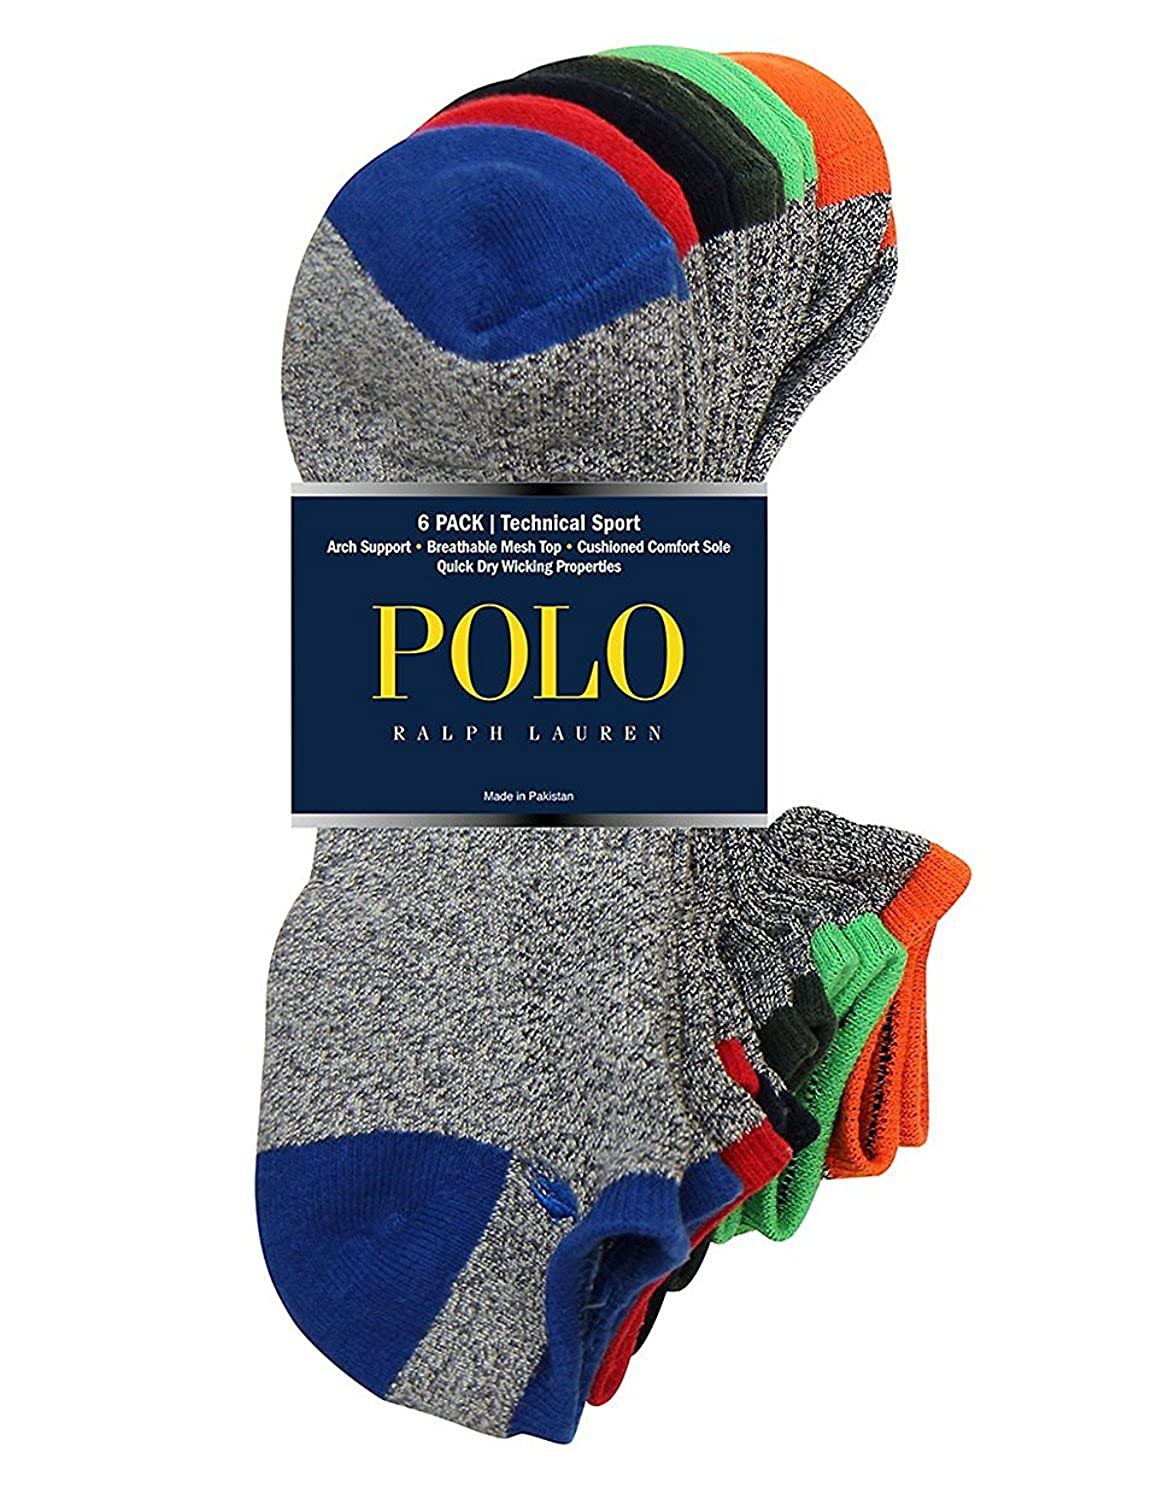 Polo Ralph Lauren 6-Pack Technical Sport Ped Socks